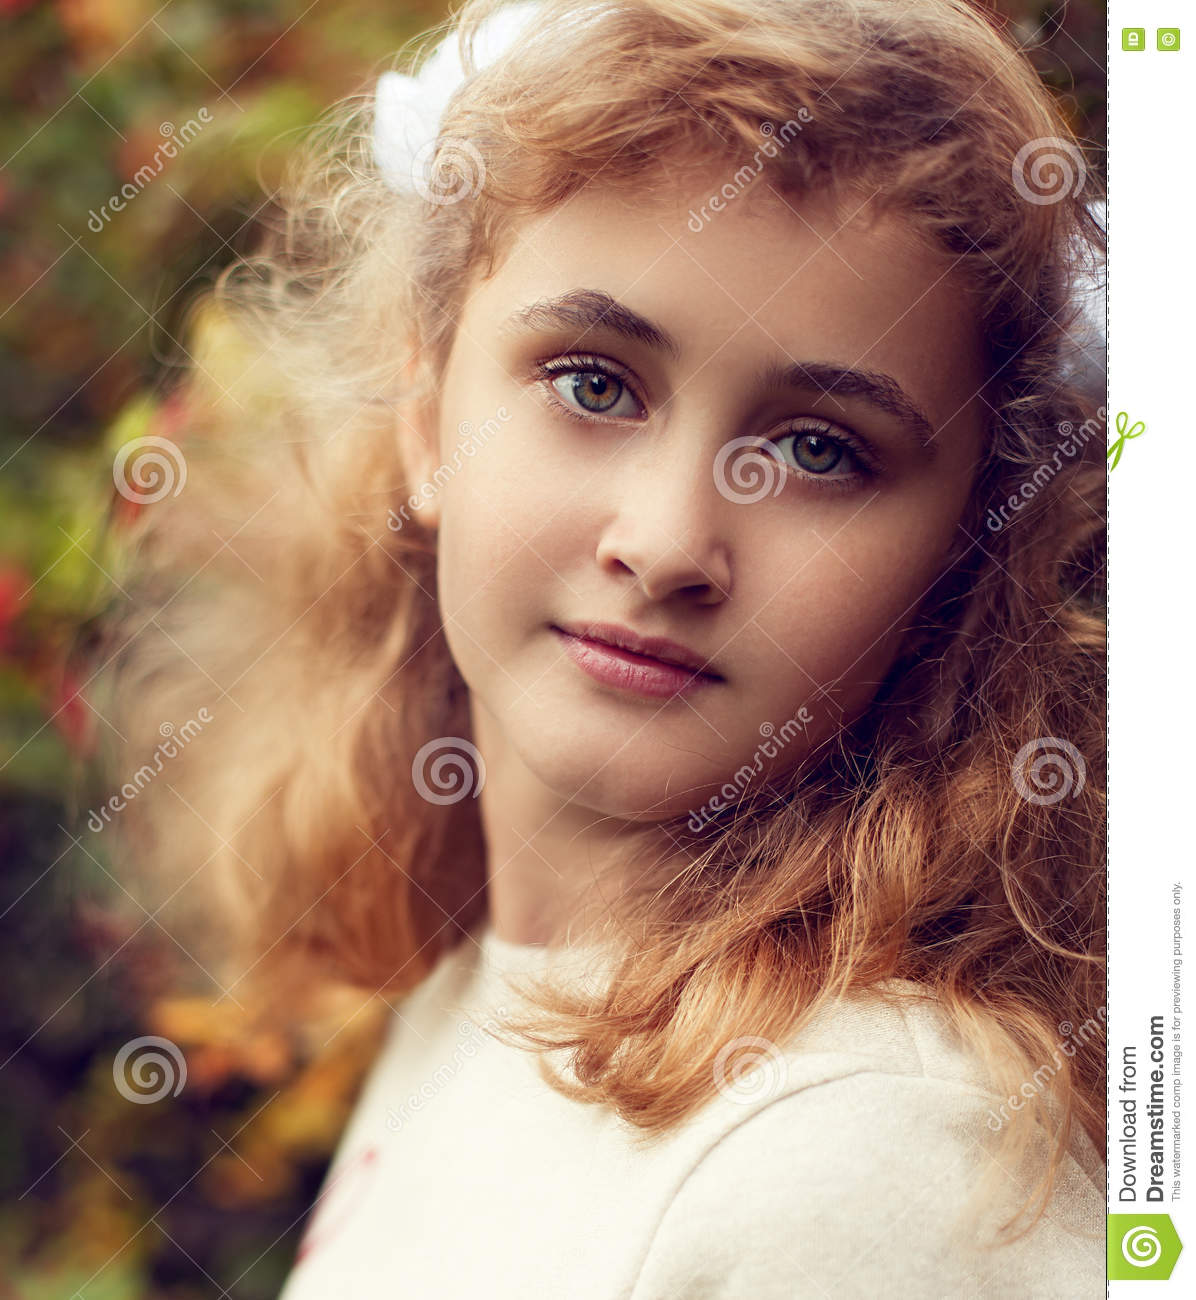 Adorable 2 Years Old Stock Photo 8630346